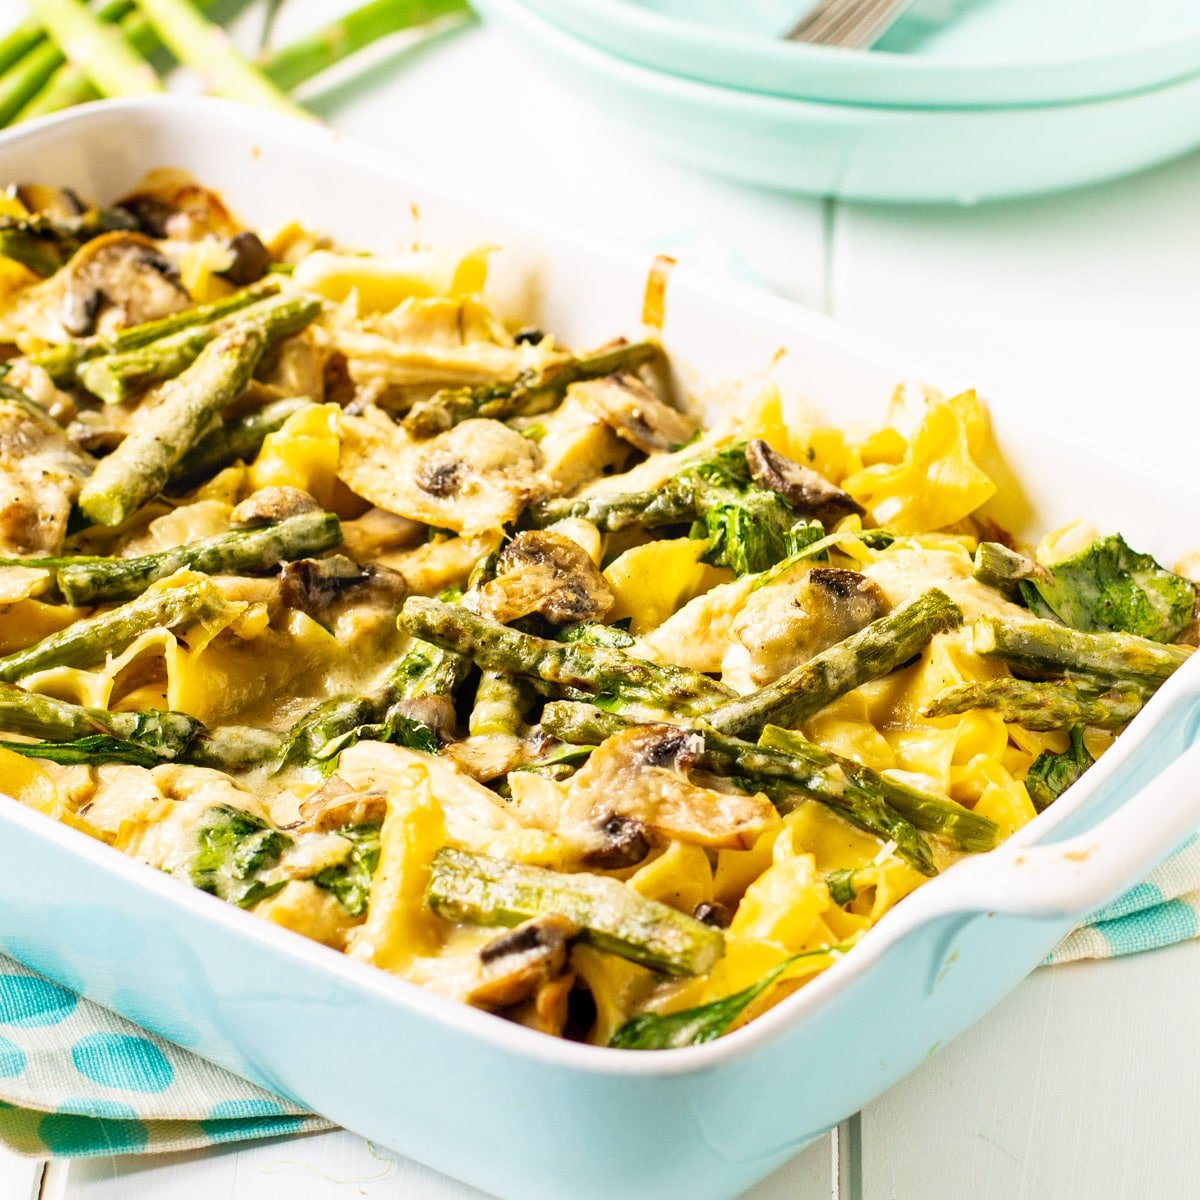 Chicken and Asparagus Casserole in a baking dish.